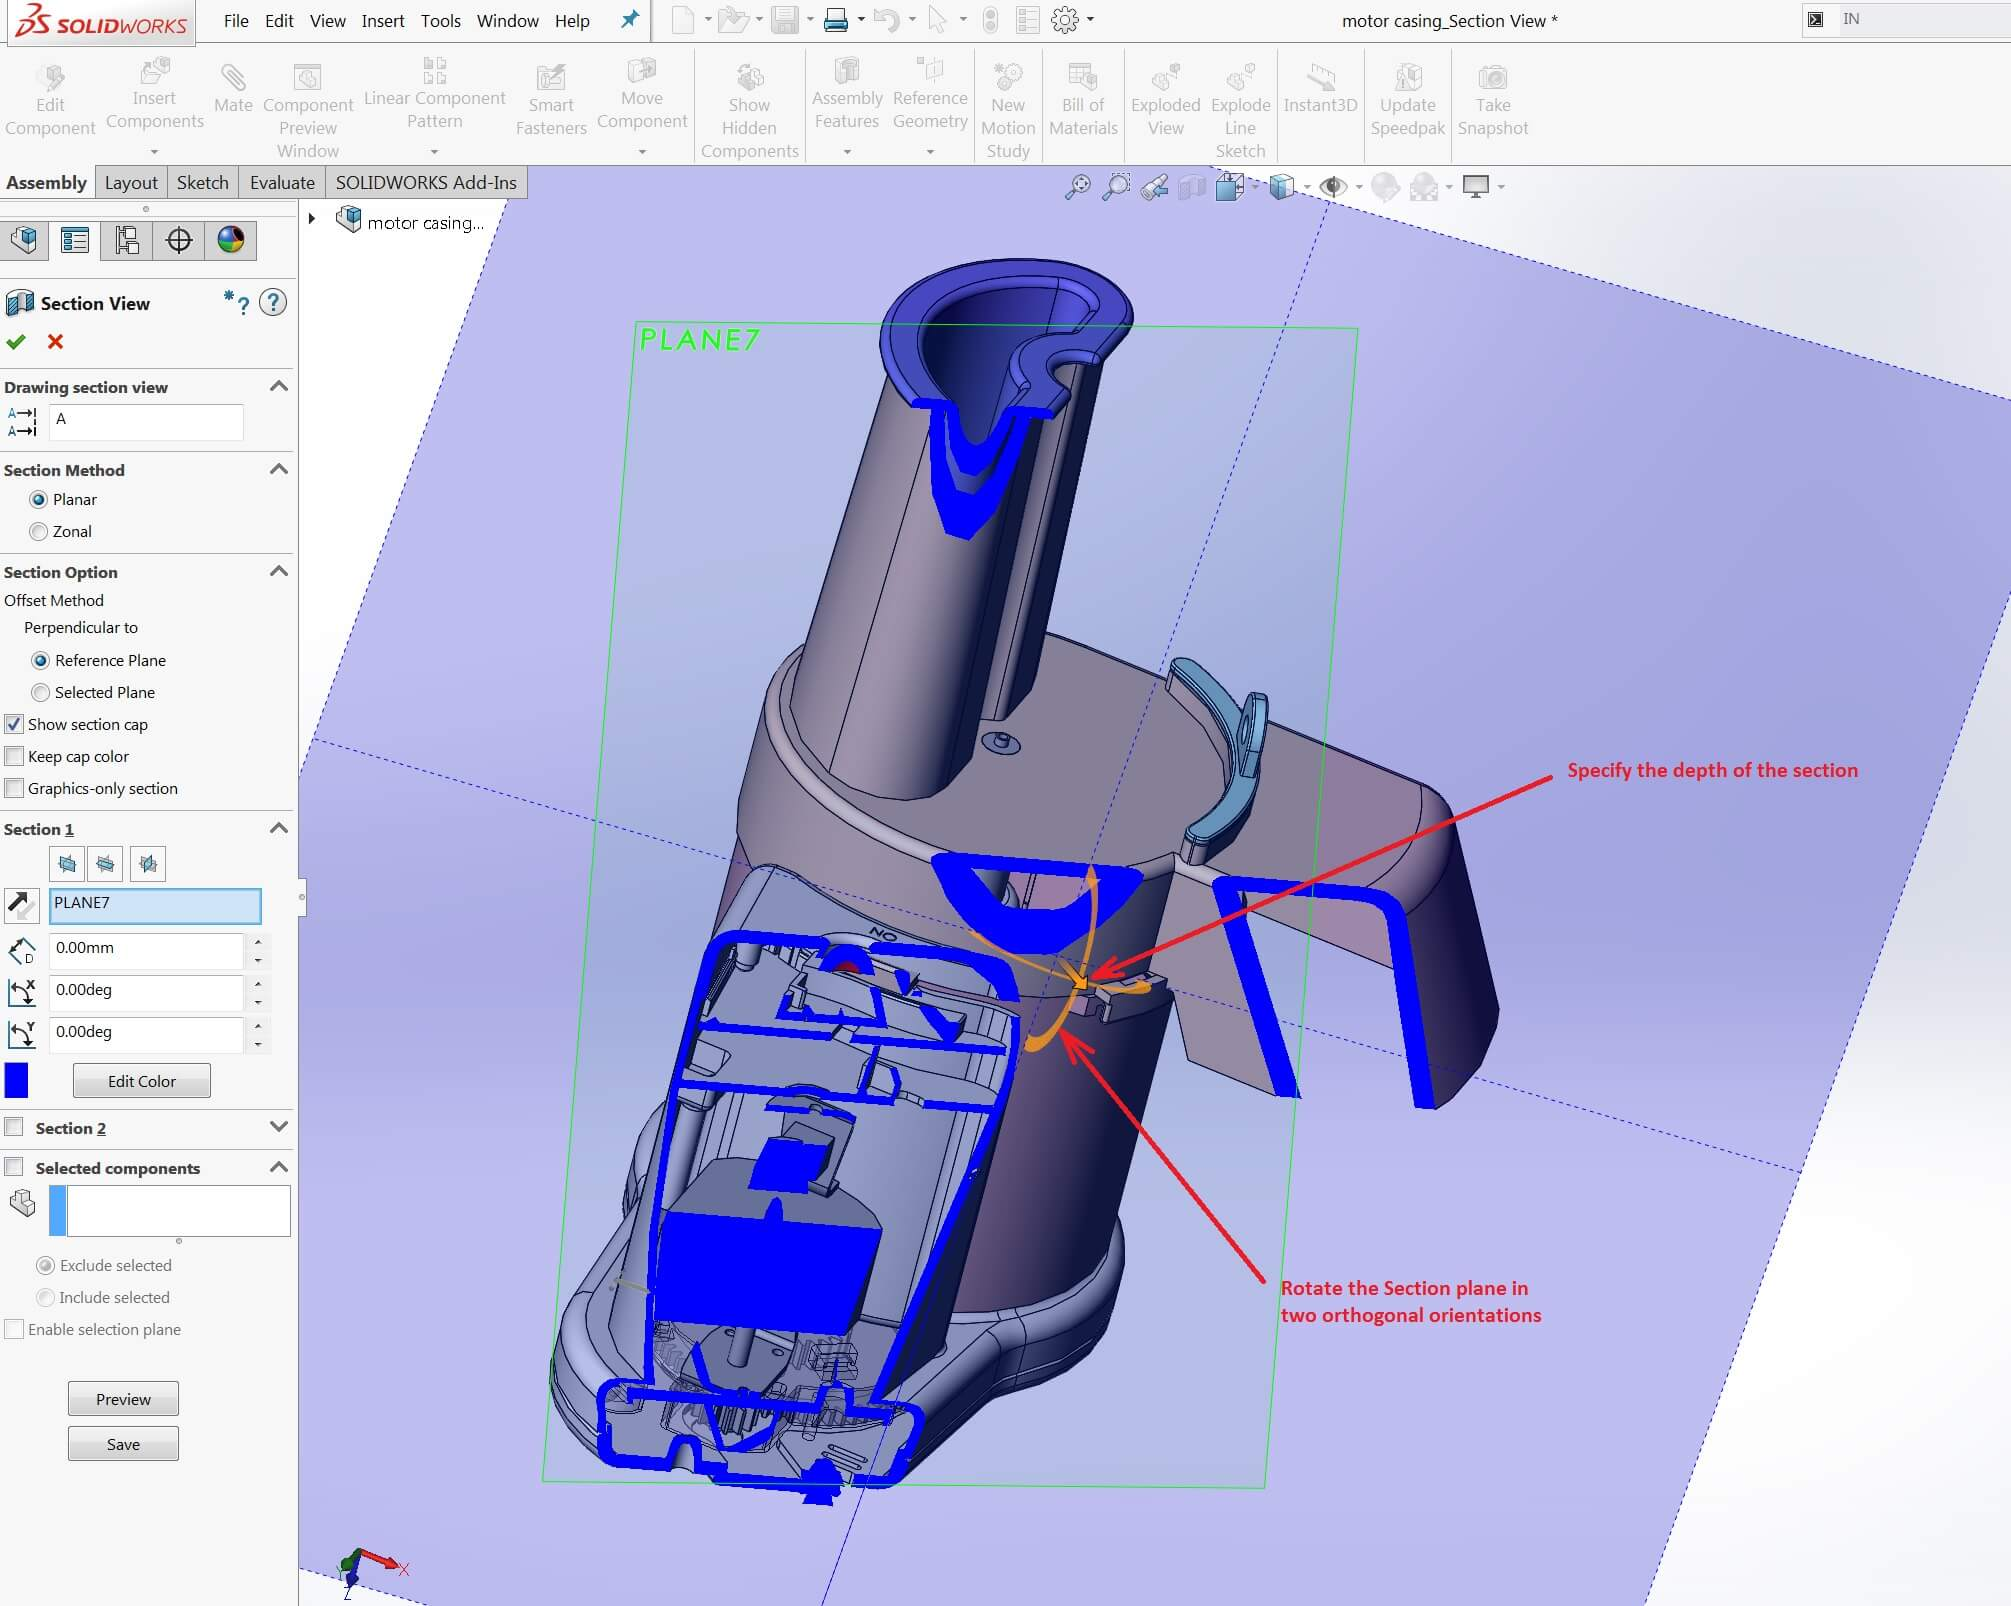 Customized SOLIDWORKS Section View